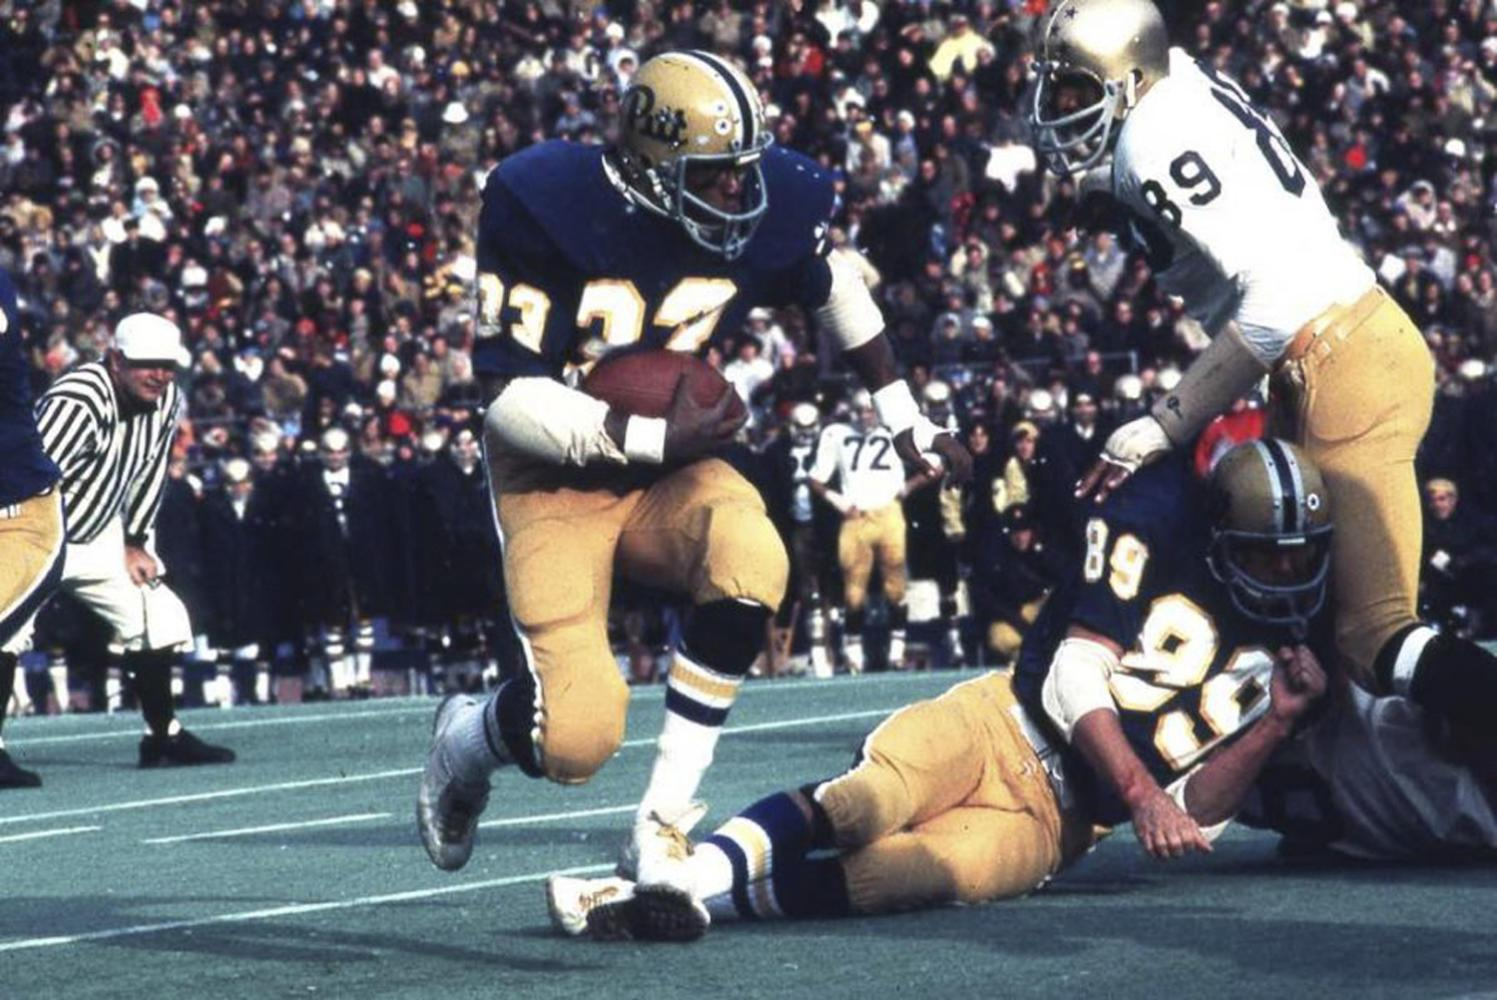 Tony Dorsett was a running back for Pitt from 1973 to 1976 and is the only Panther to have received the Heisman Trophy Award. (Photo courtesy of ULS Archives)